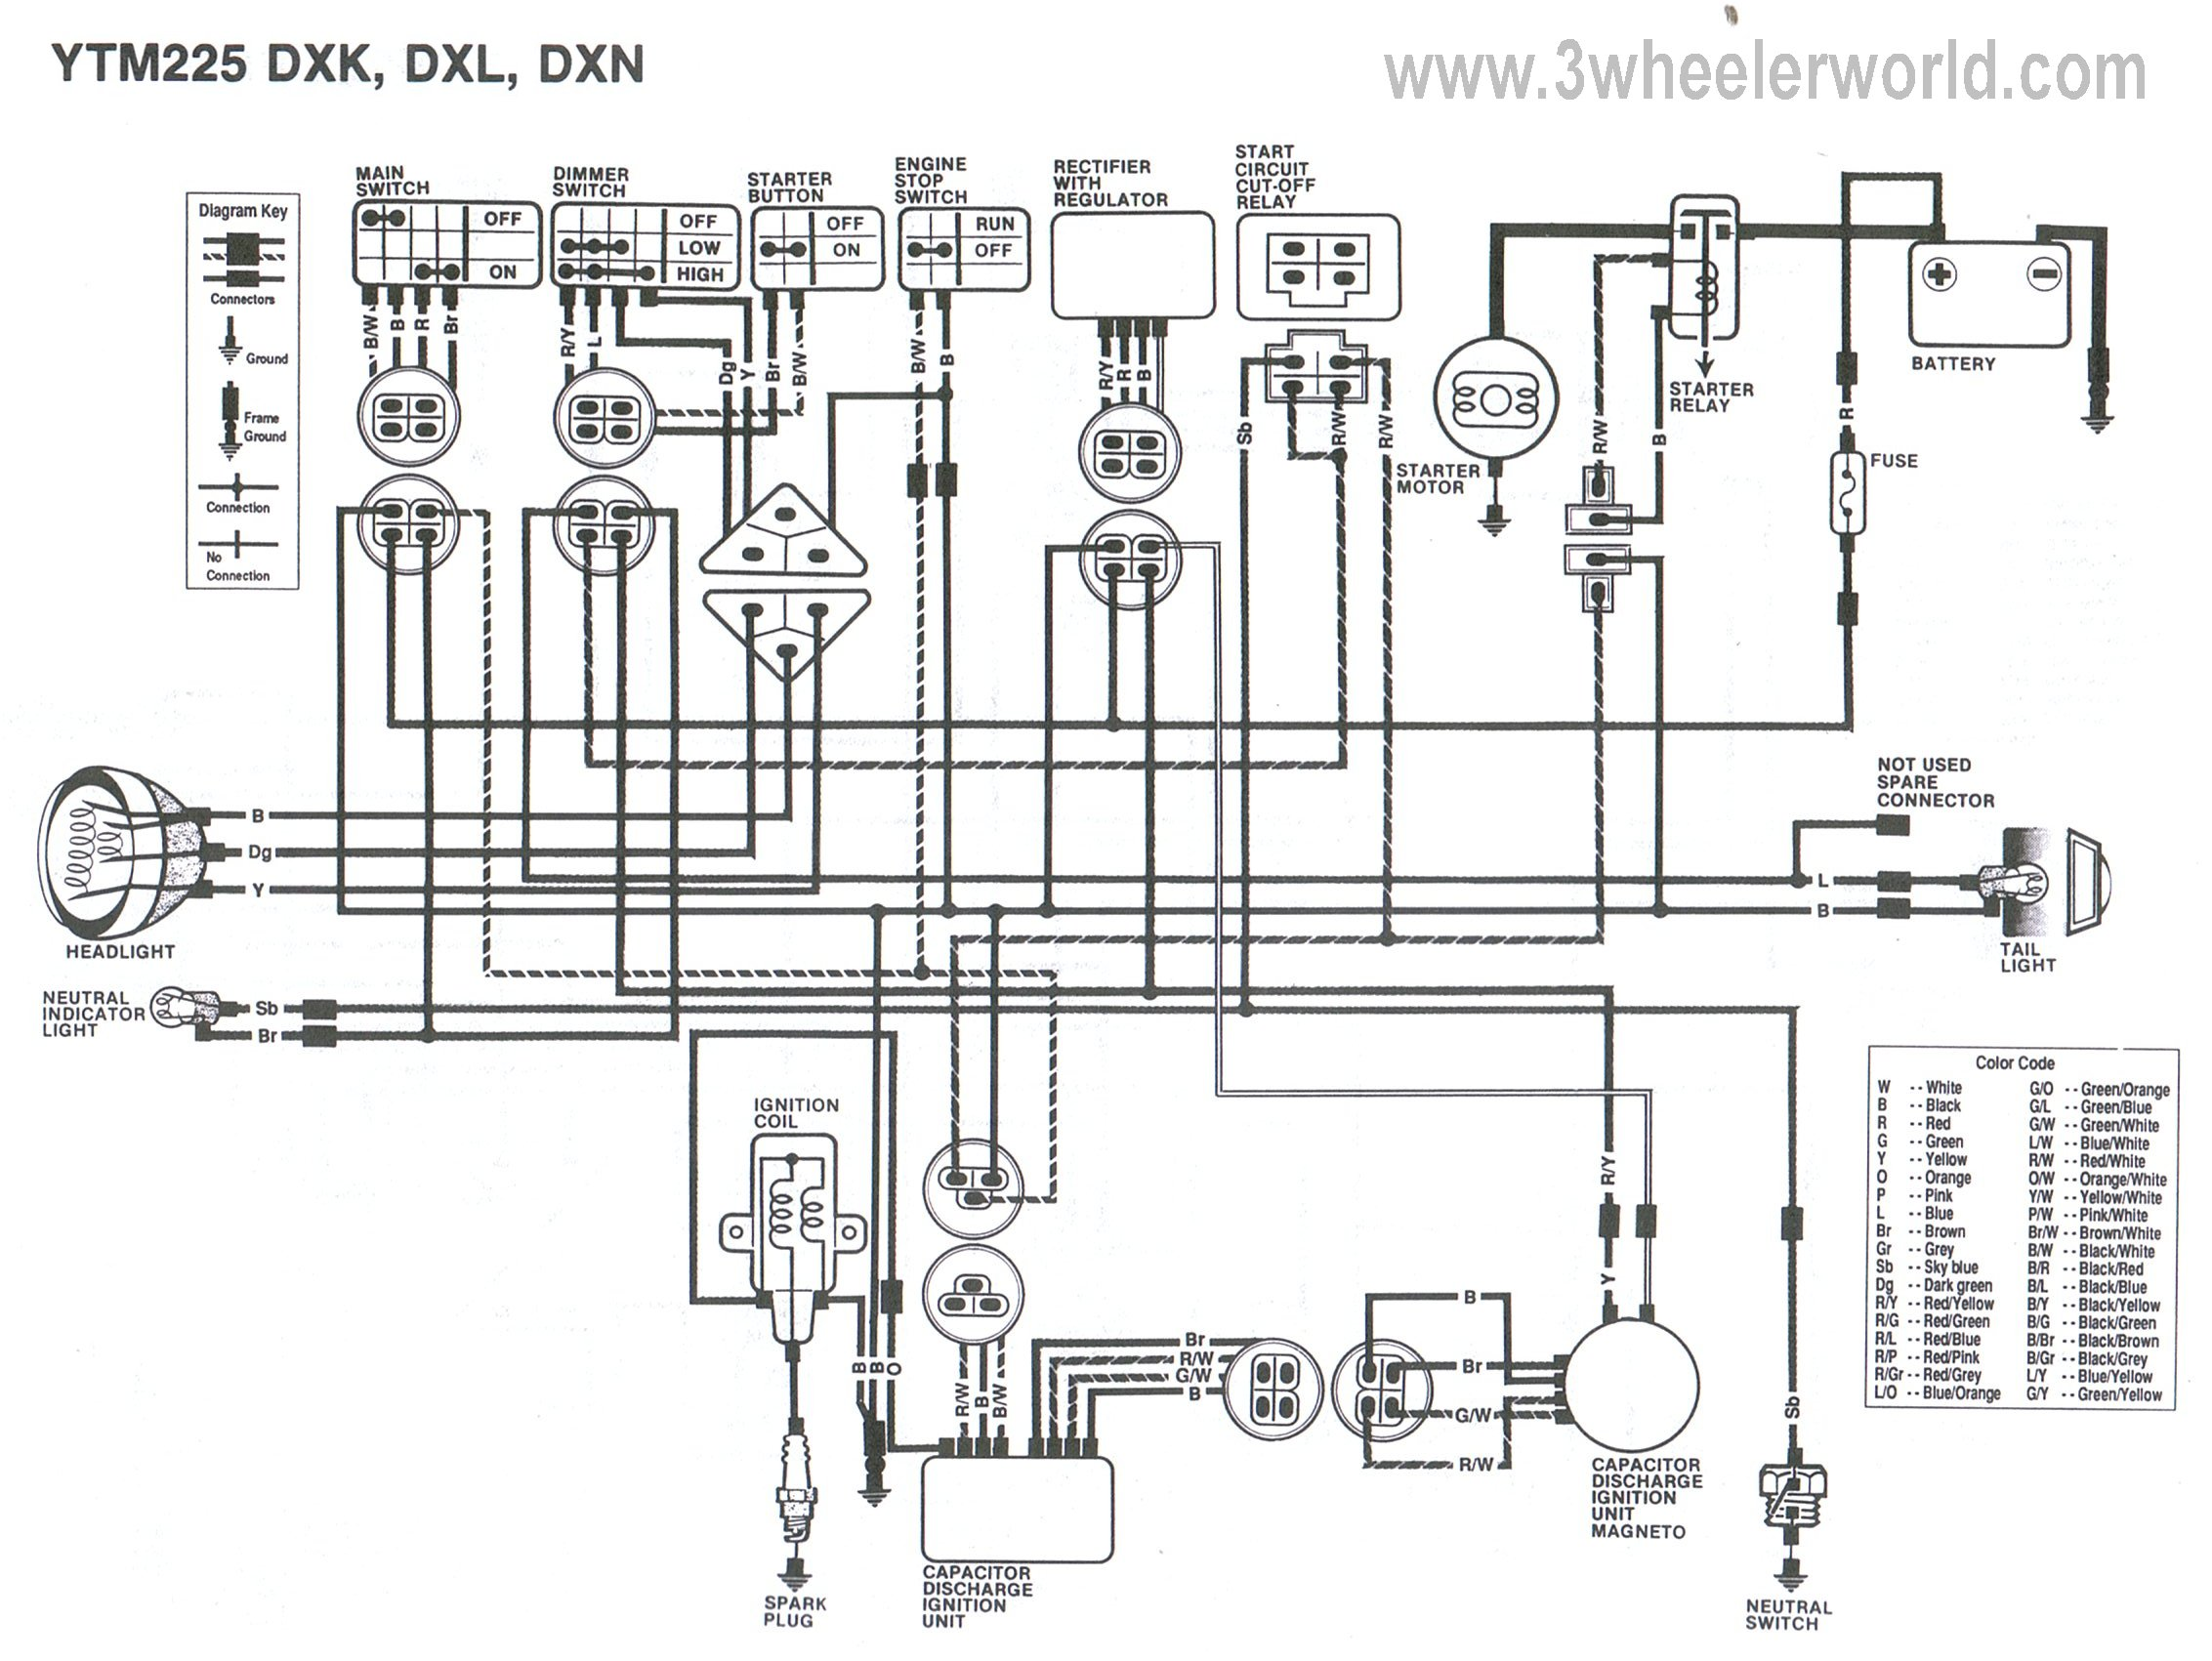 YTM225DXKDXLDXN 3 wheeler world tech help yamaha wiring diagrams 1986 yamaha moto 4 200 wiring schematic at alyssarenee.co